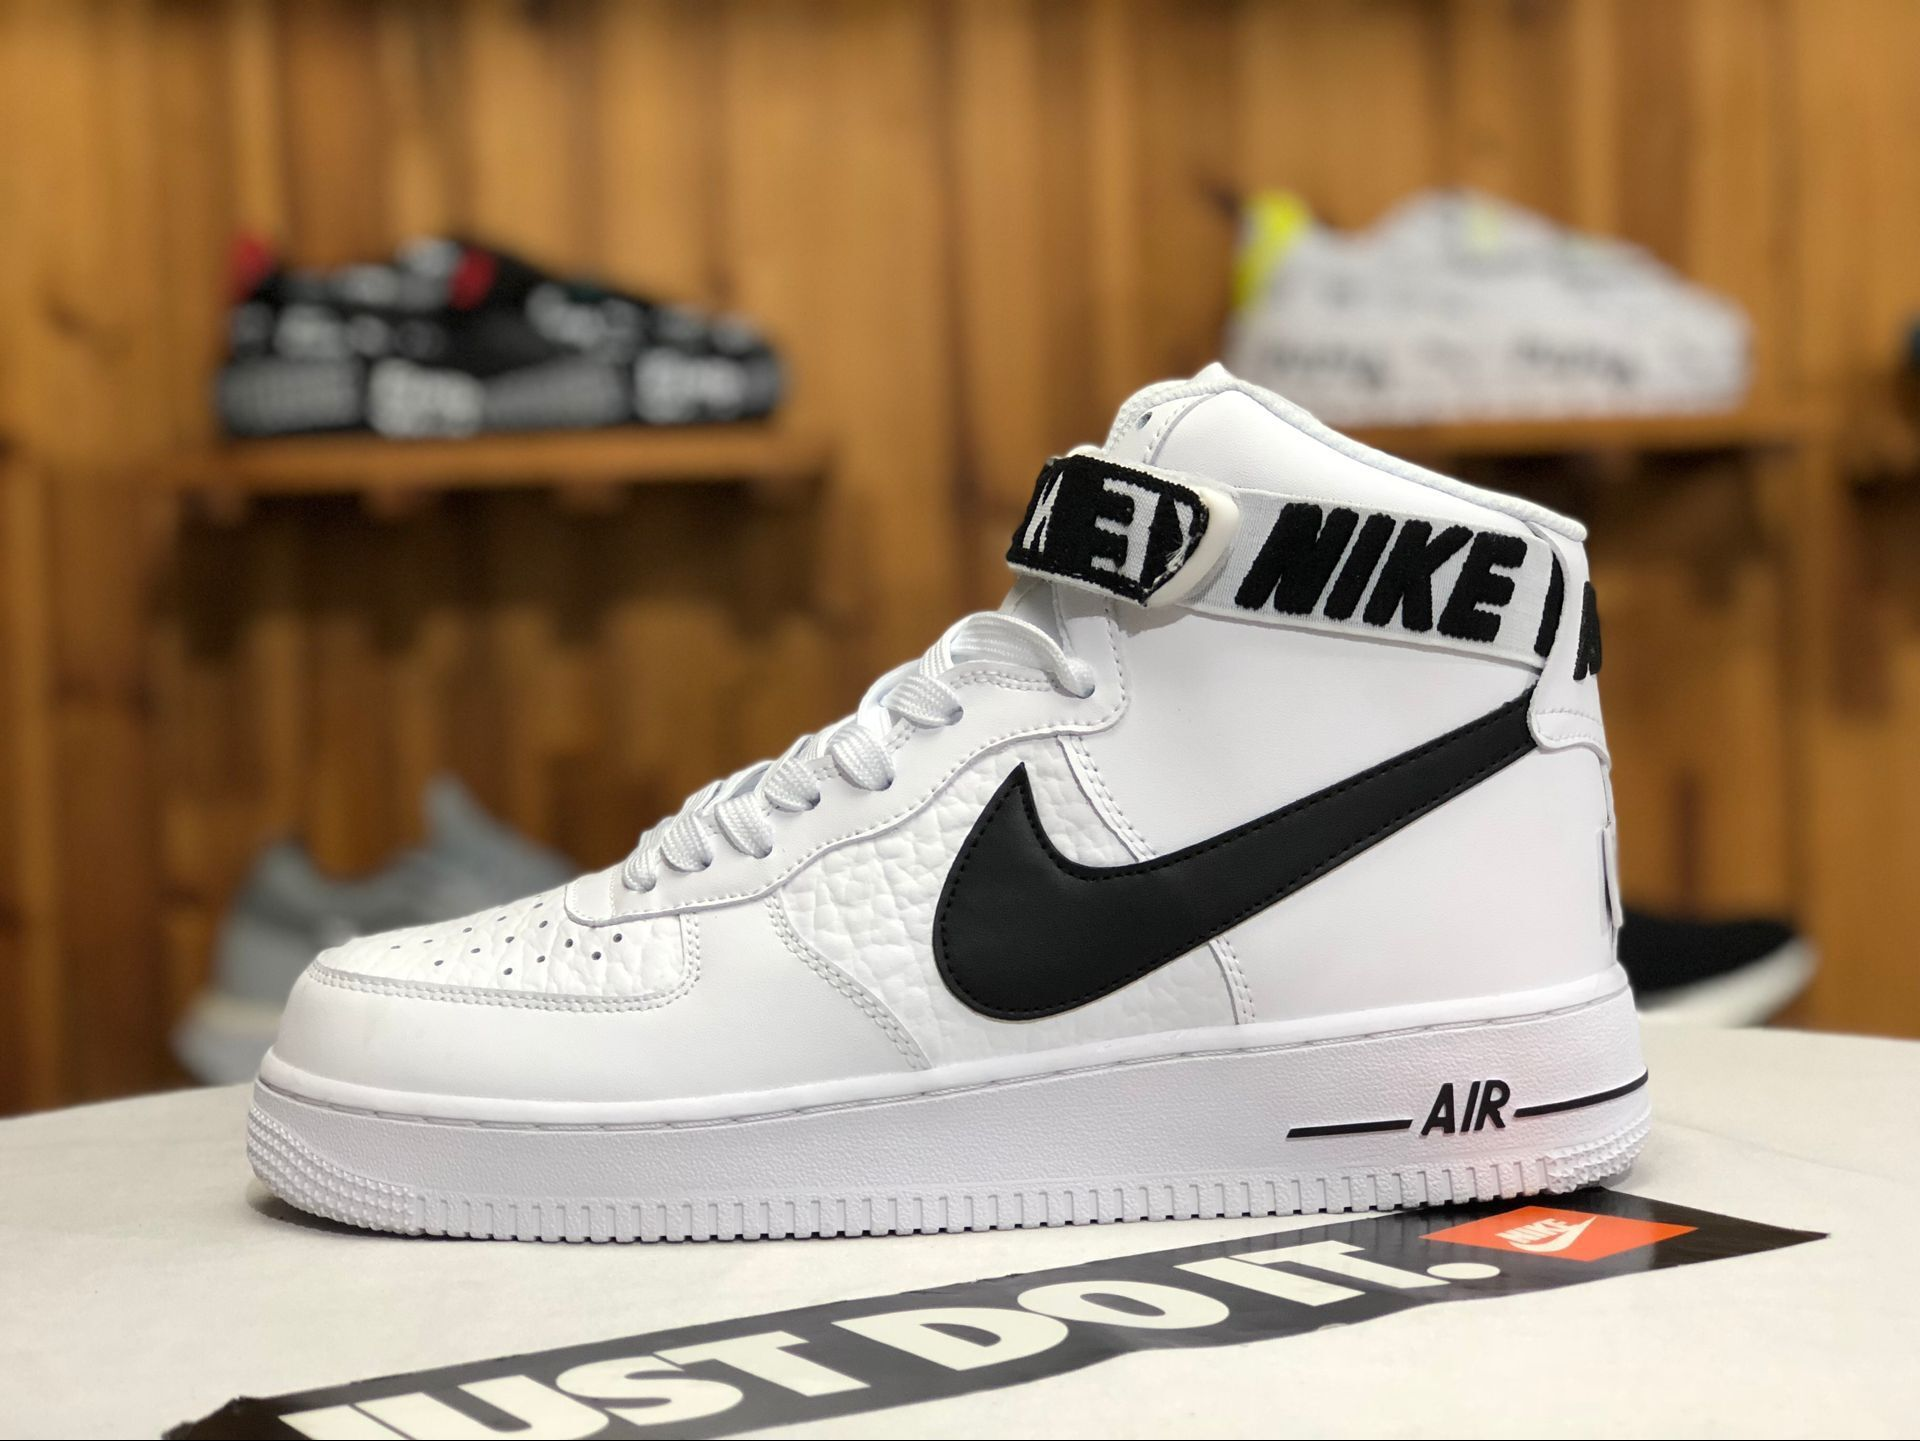 Nike Air Force 1 High 07 Nba Pack White Black With Strap Sneakers Nike Shoes Air Force Air Force One Shoes Womens Basketball Shoes